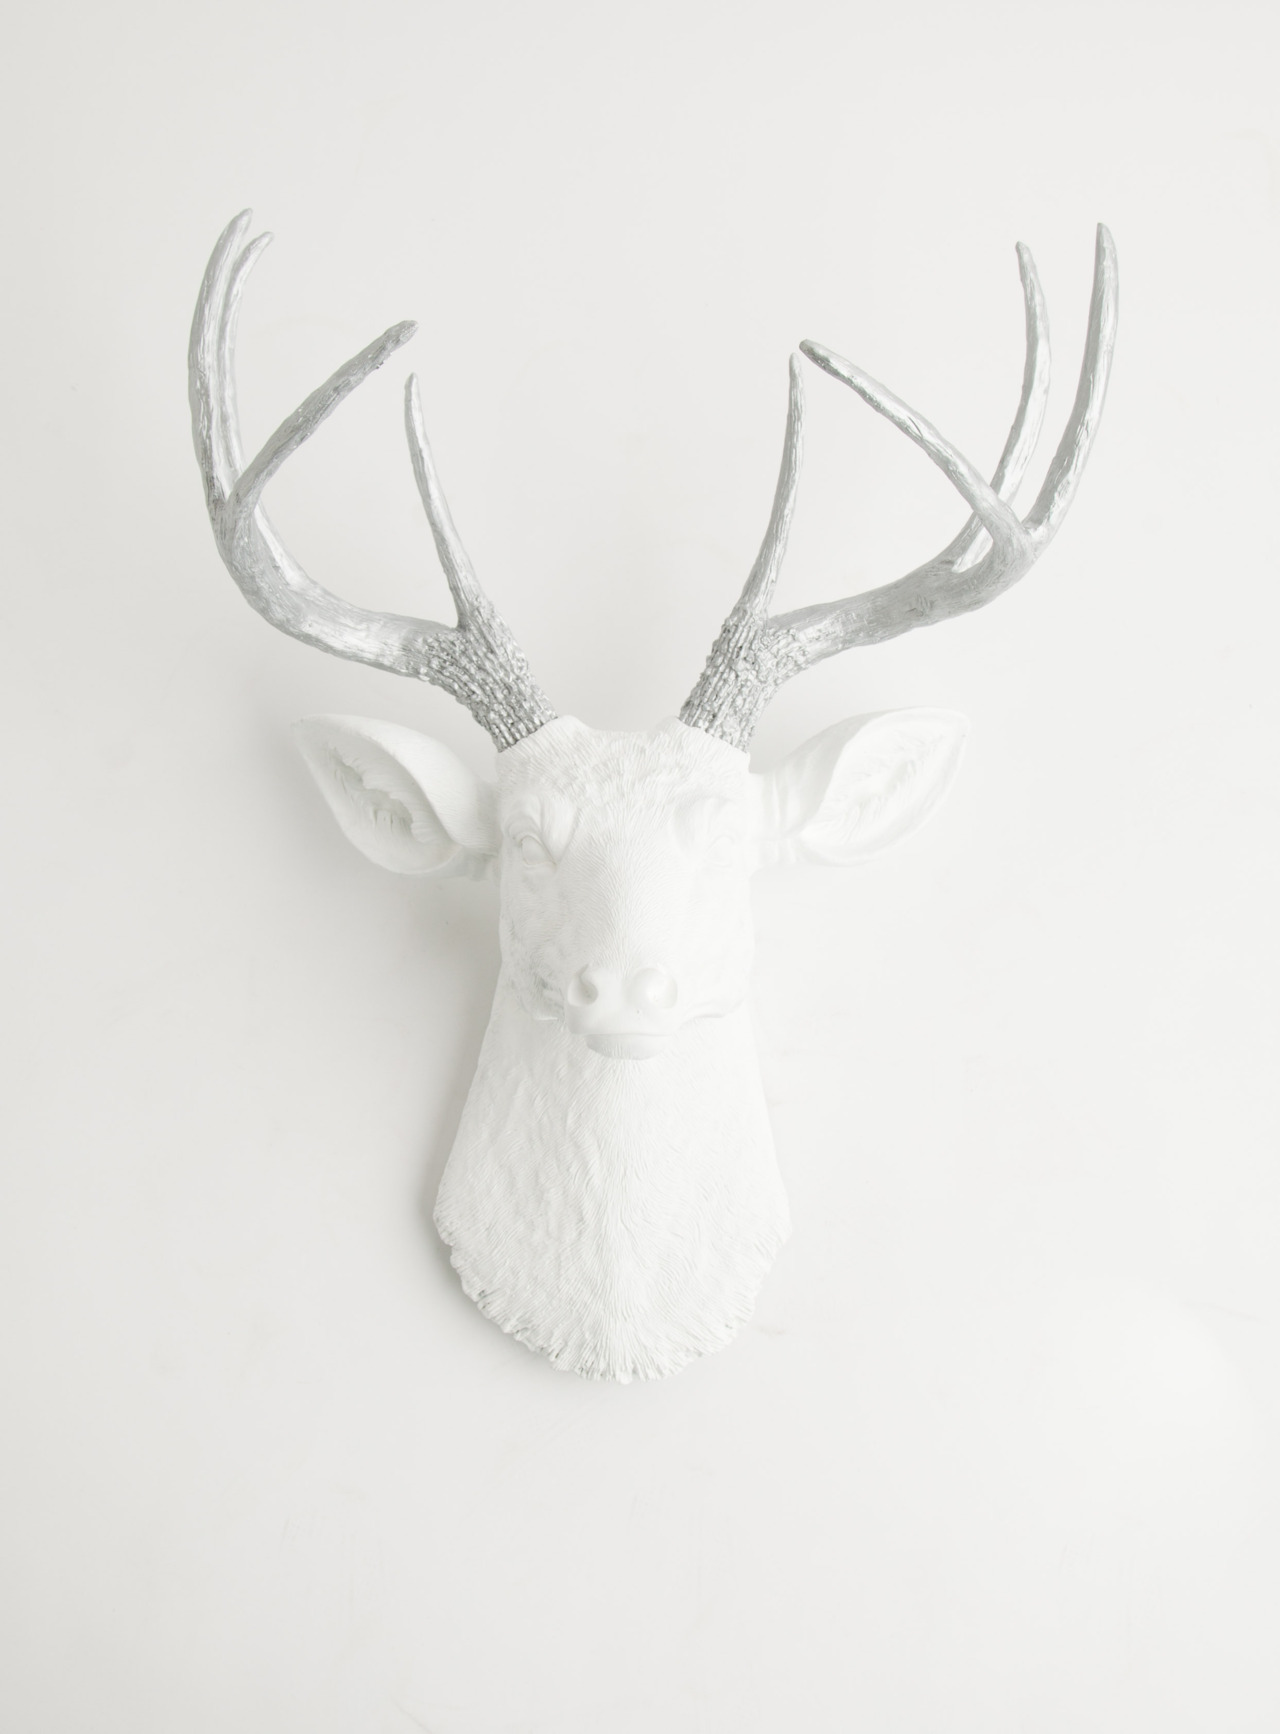 the frankfurt - white resin with metallic antler deer head